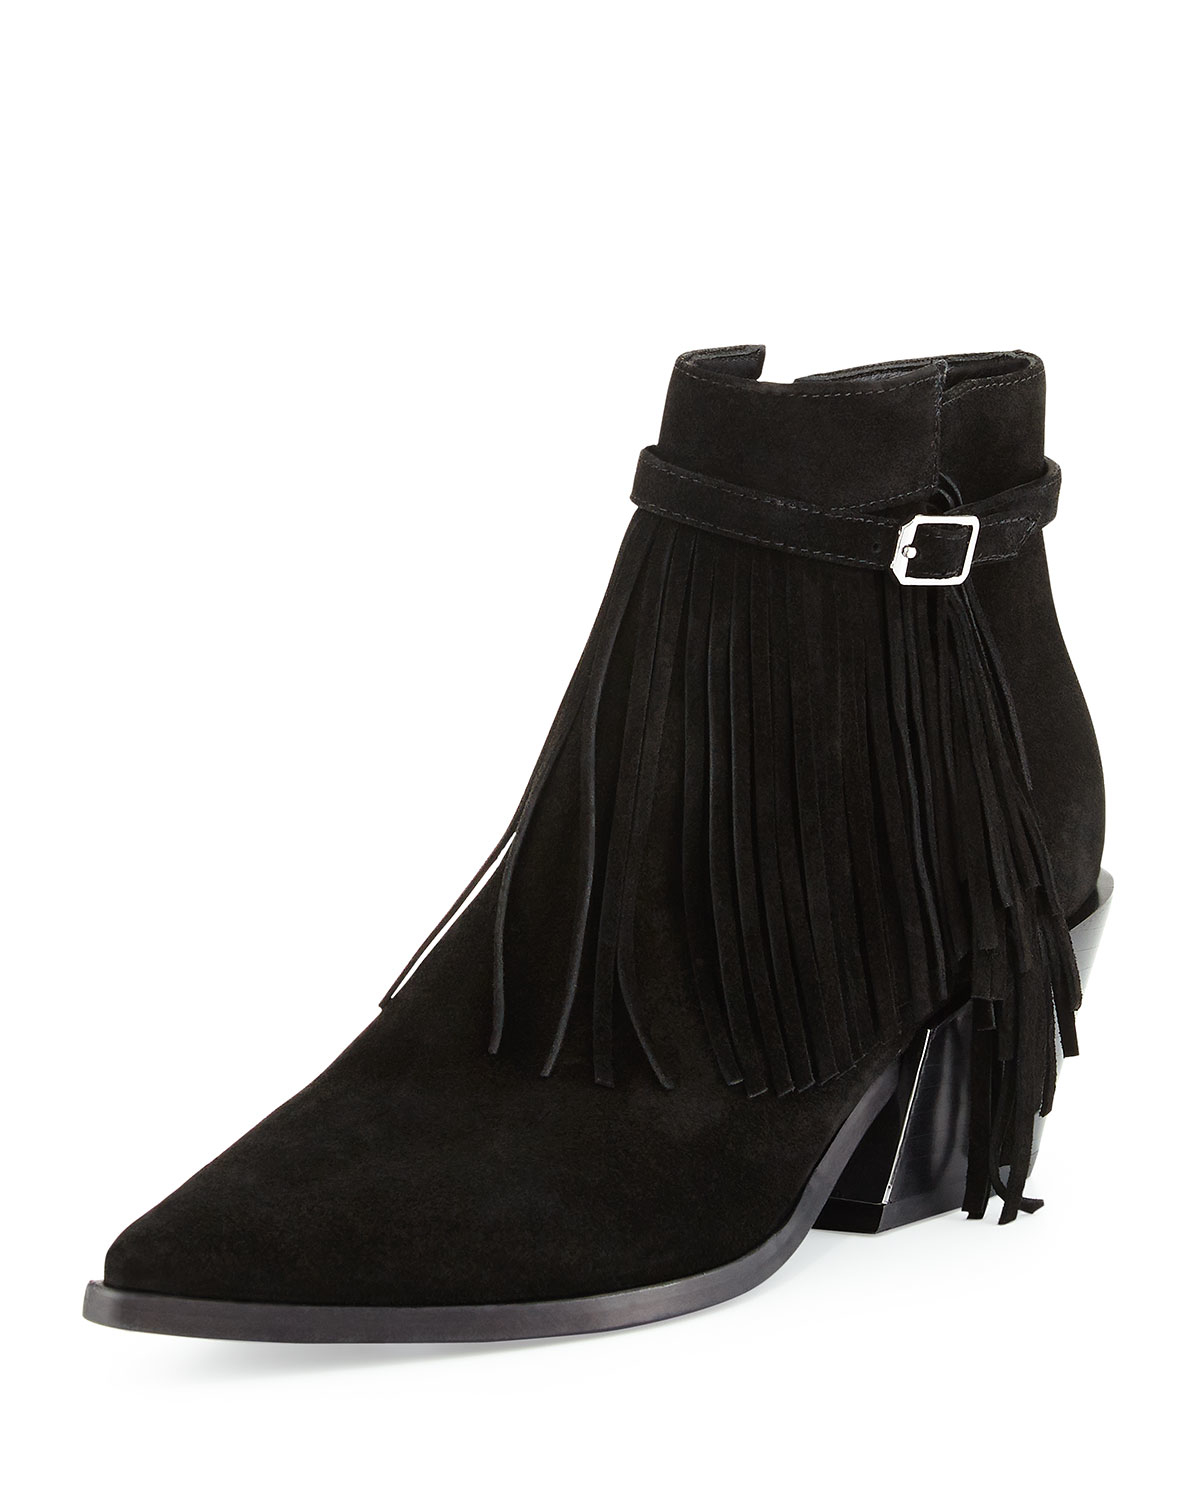 Aug 21, · Fringe Ankle Boots Black. Order today & shop it like it's hot at Missguided. Order today & shop it like it's hot at Missguided. The fascinating photo is part of Fringe Ankle Boots has dimension x .